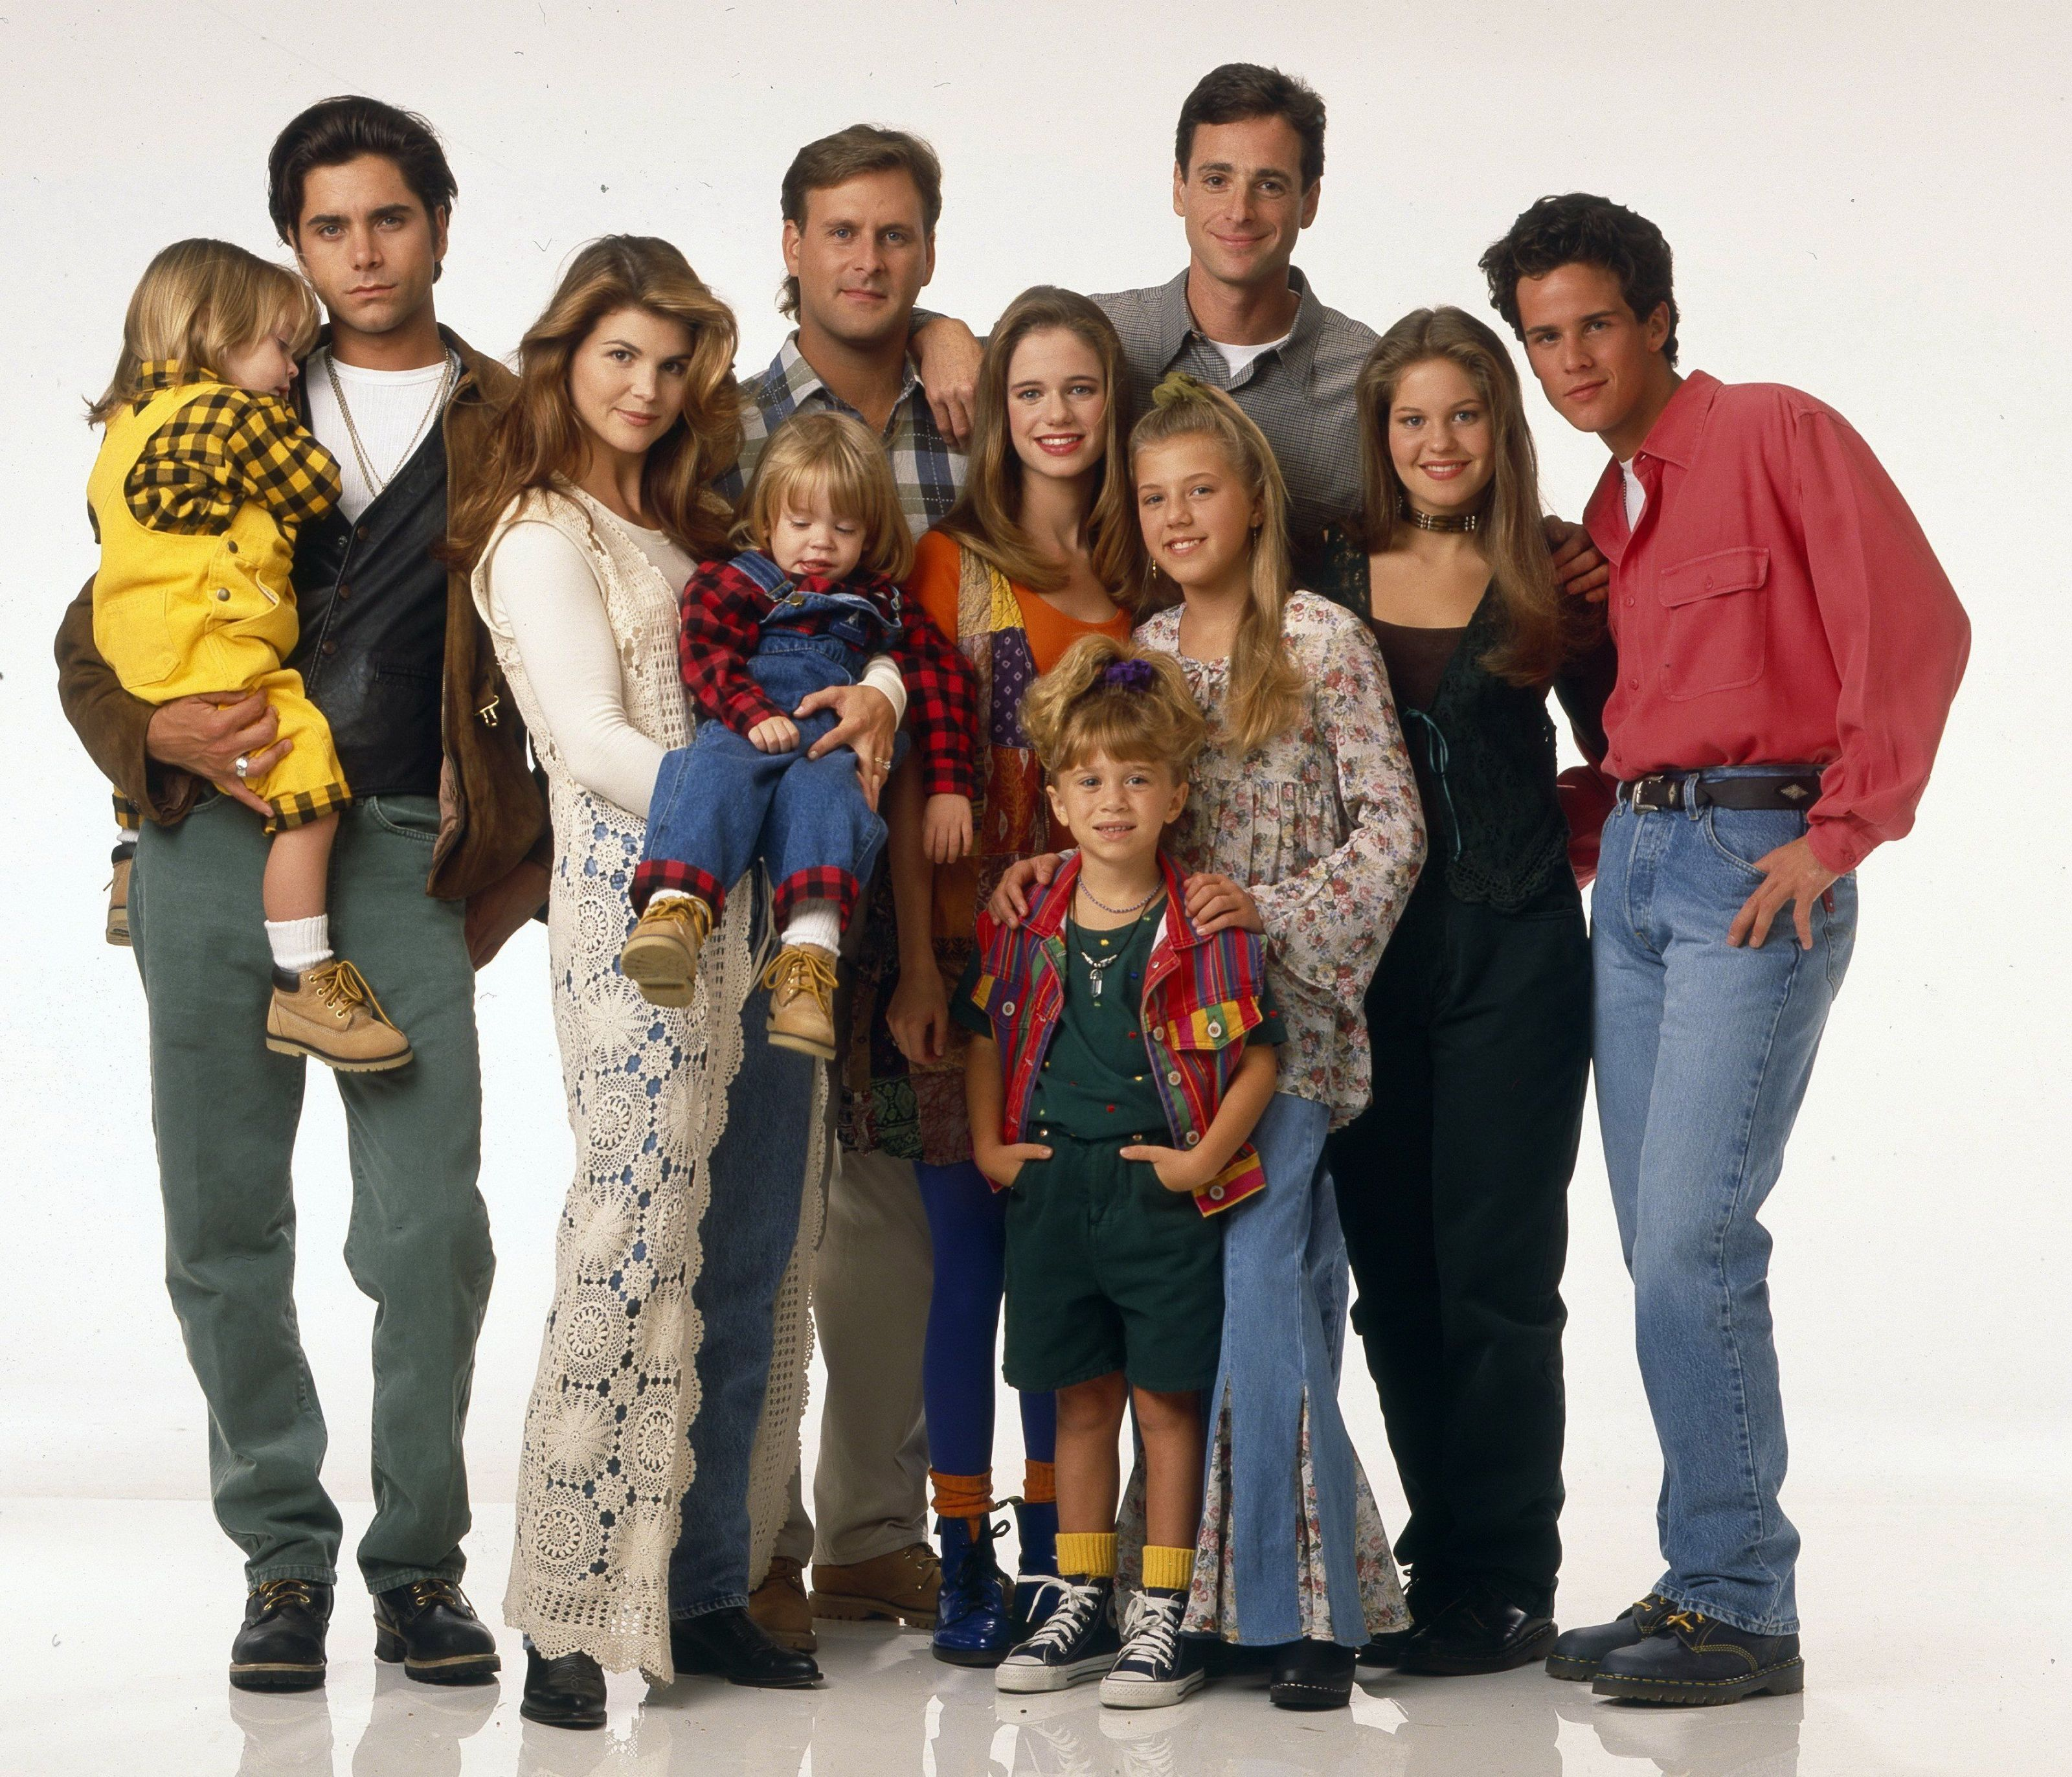 Delightful Stephanie Tanner Really Brings It In The First Fuller House Cast Photo